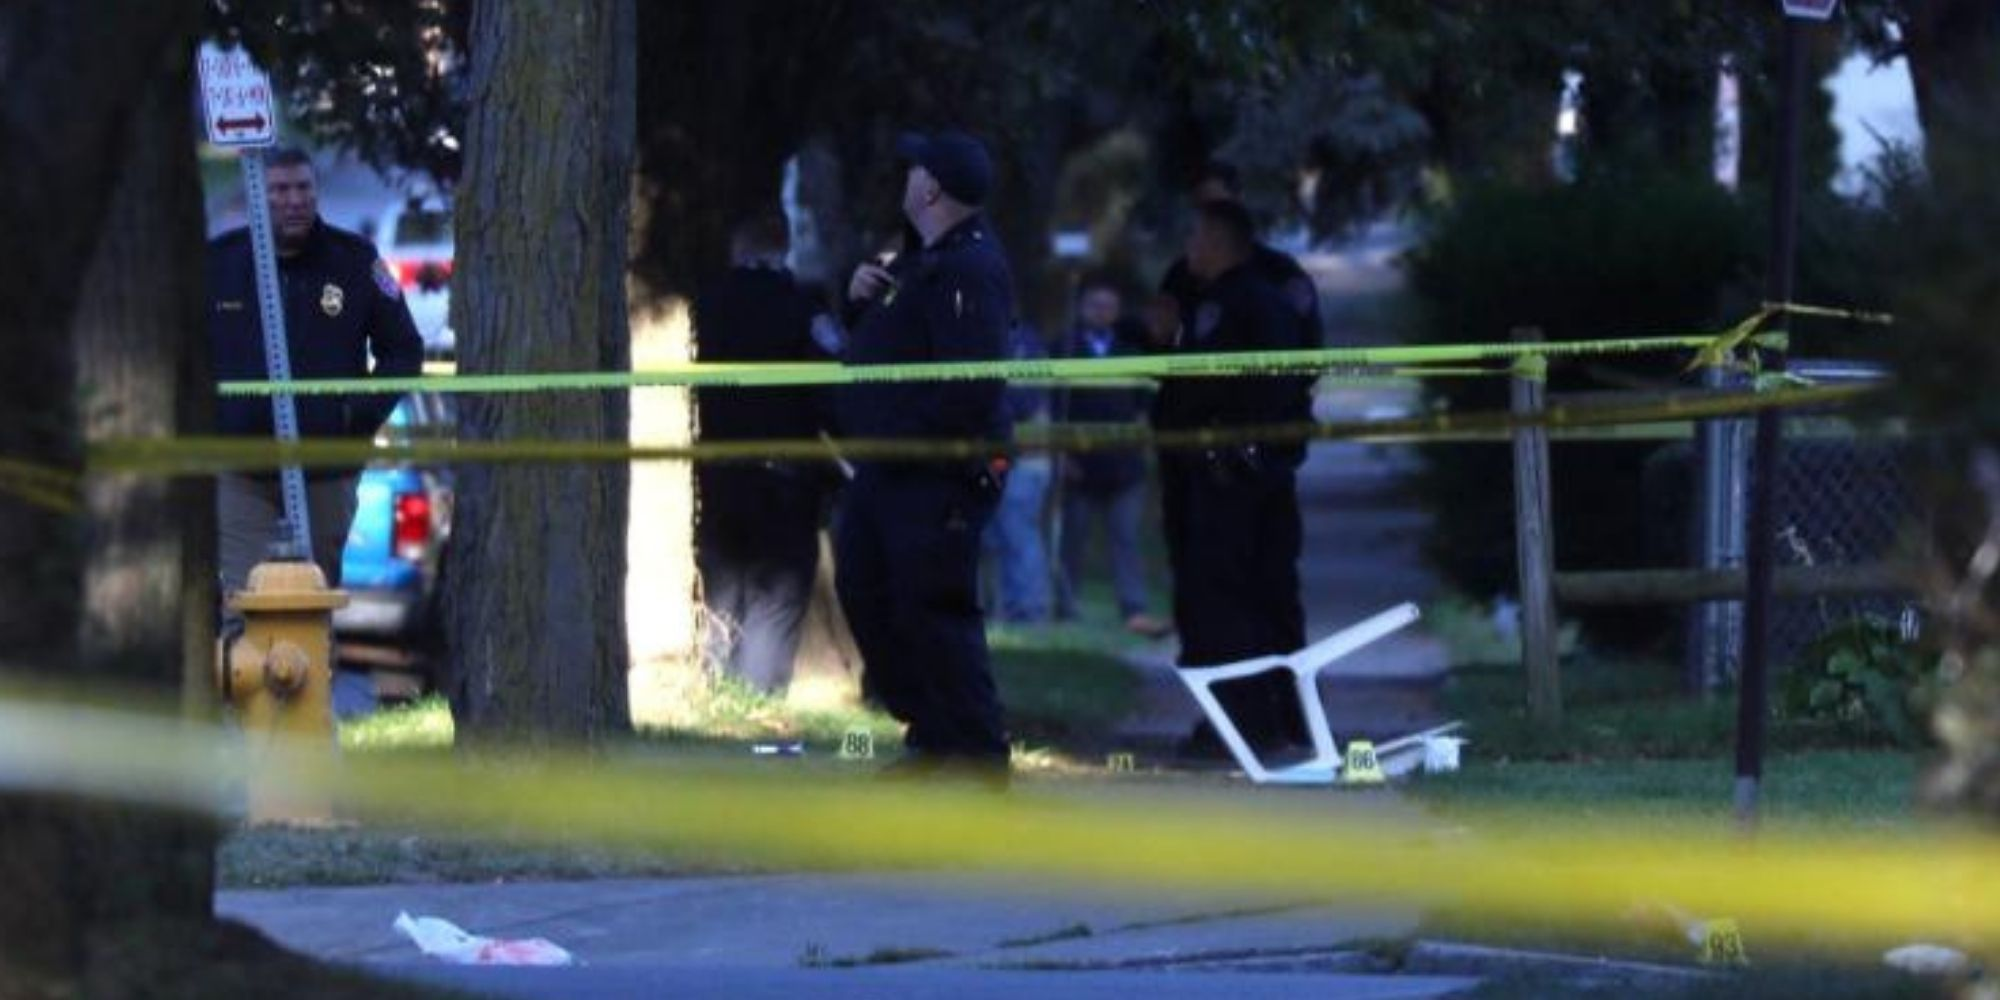 Mass shooting in Rochester leaves 2 dead and 14 wounded